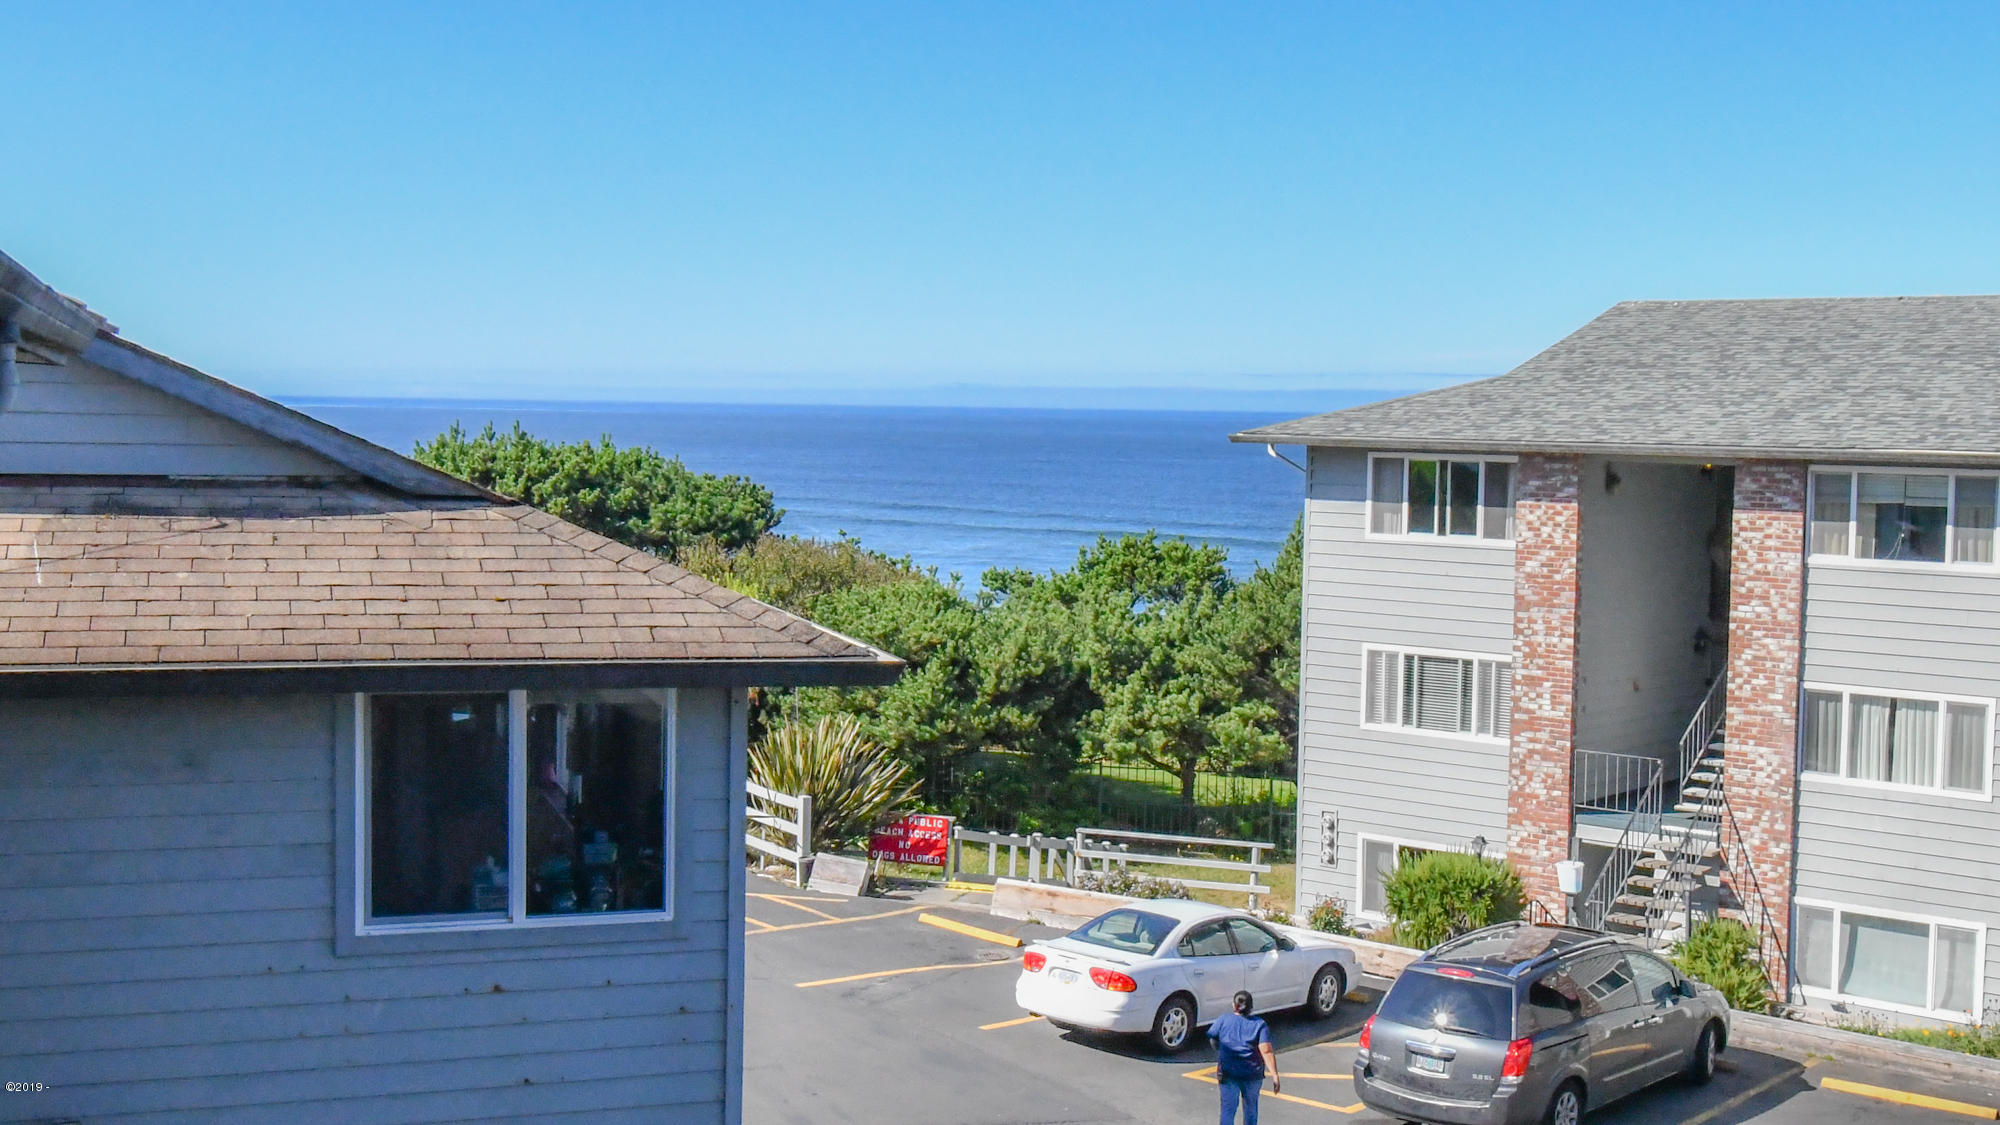 4229 SW Beach Ave, 41, Lincoln City, OR 97367 - Exterior Building and View